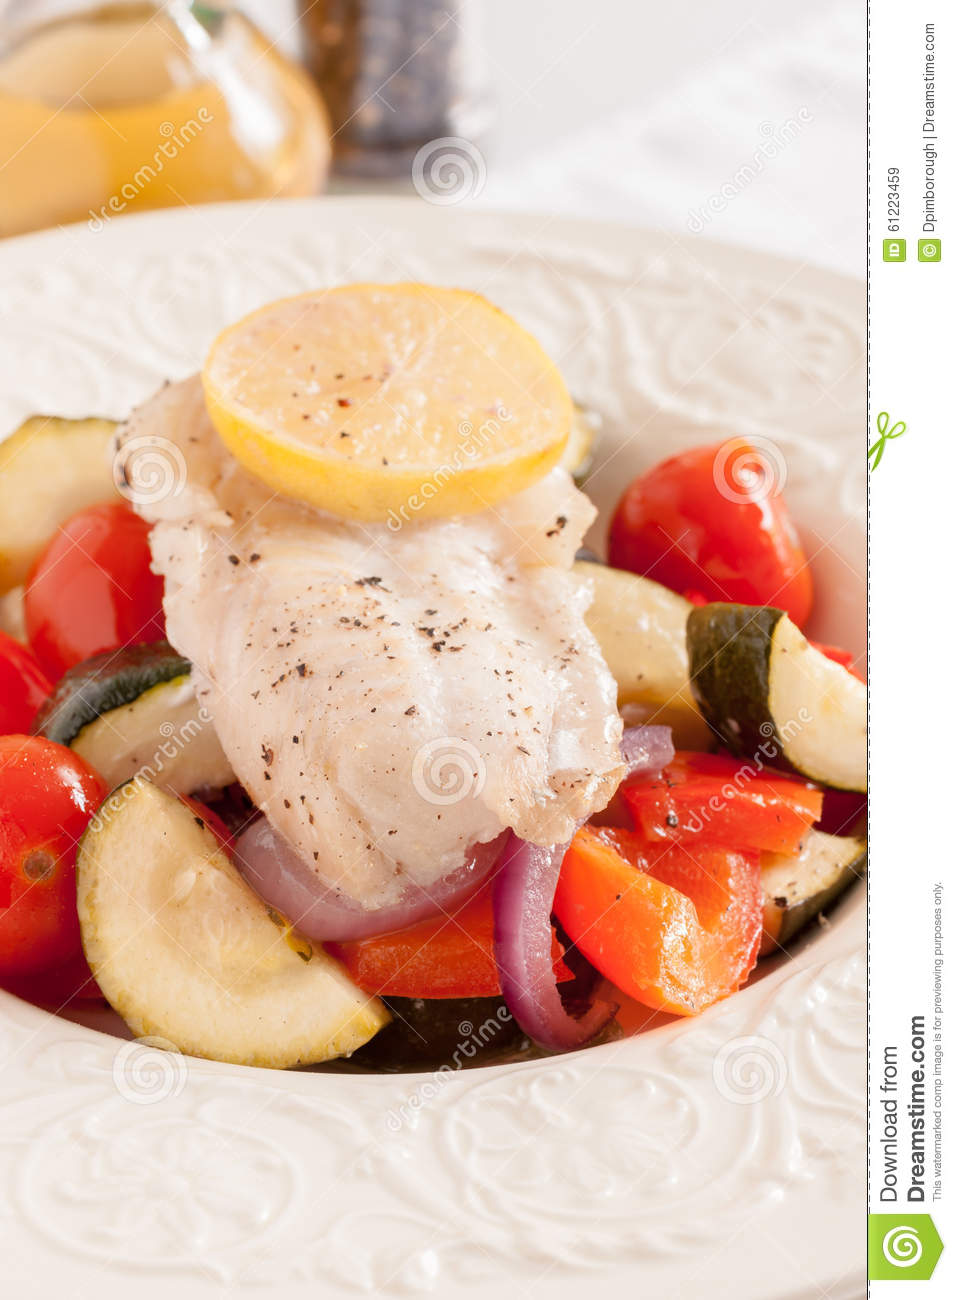 Fish Provencal a French dish with roasted vegetables and white fish ...